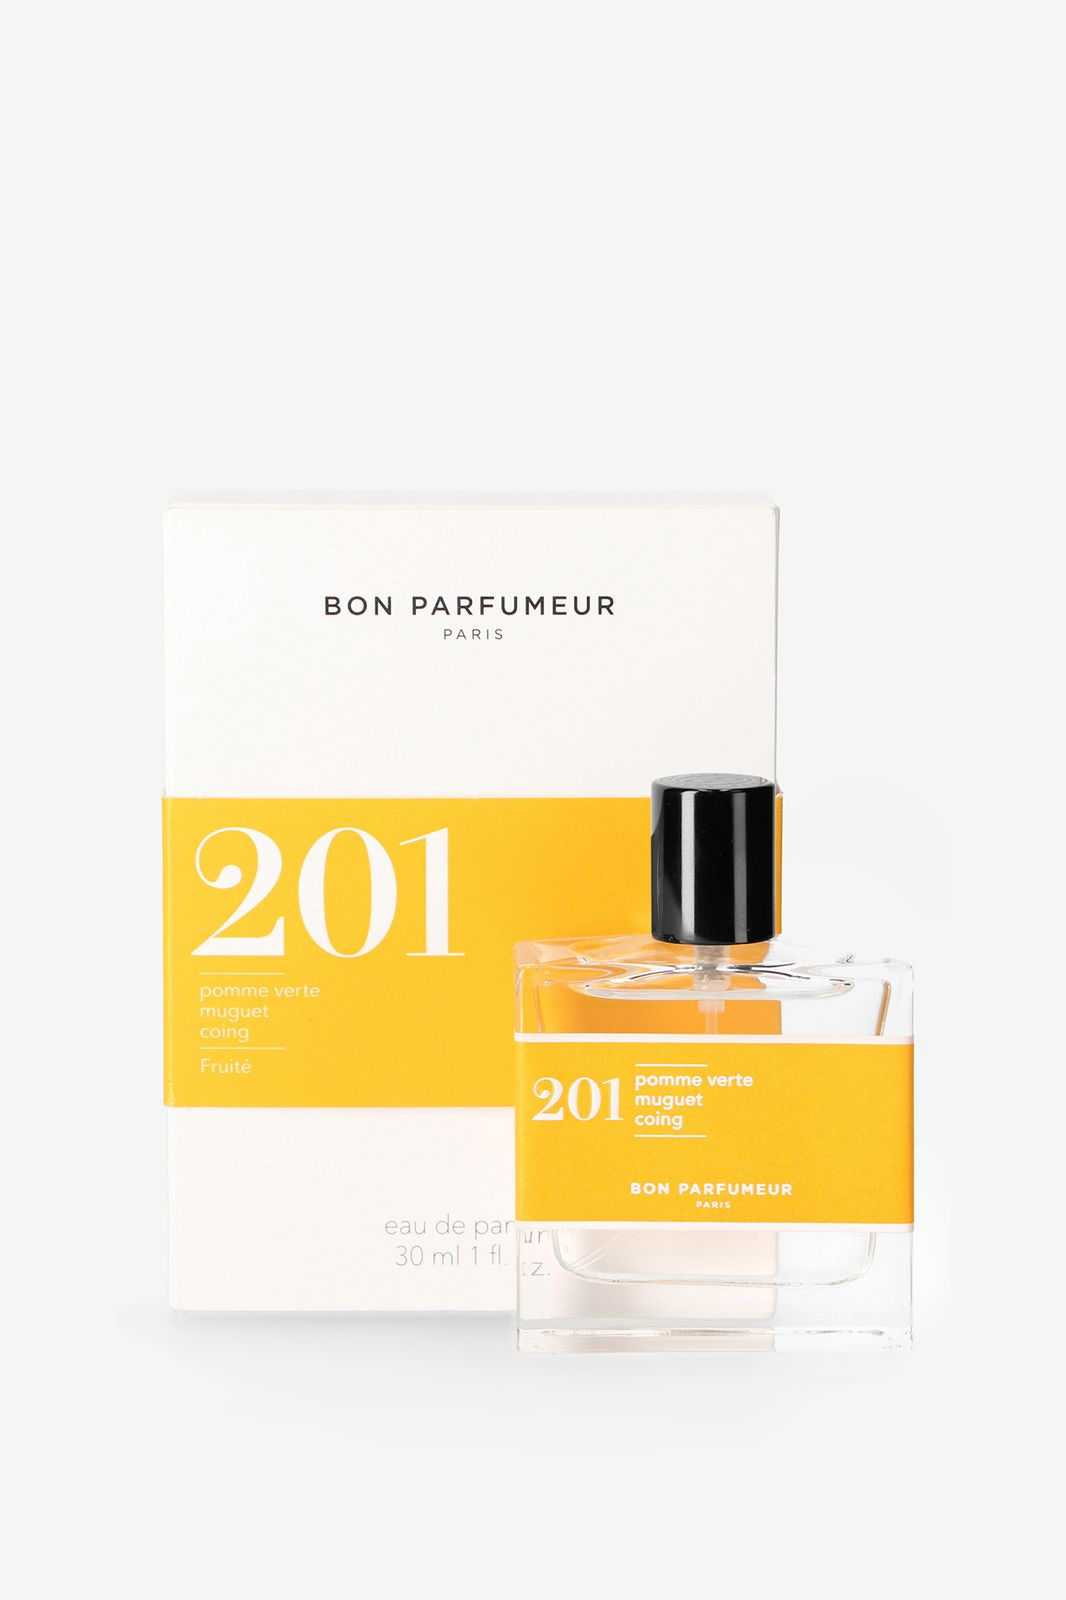 Bon parfumeur 201: green apple / lily-of-the-valley / quince